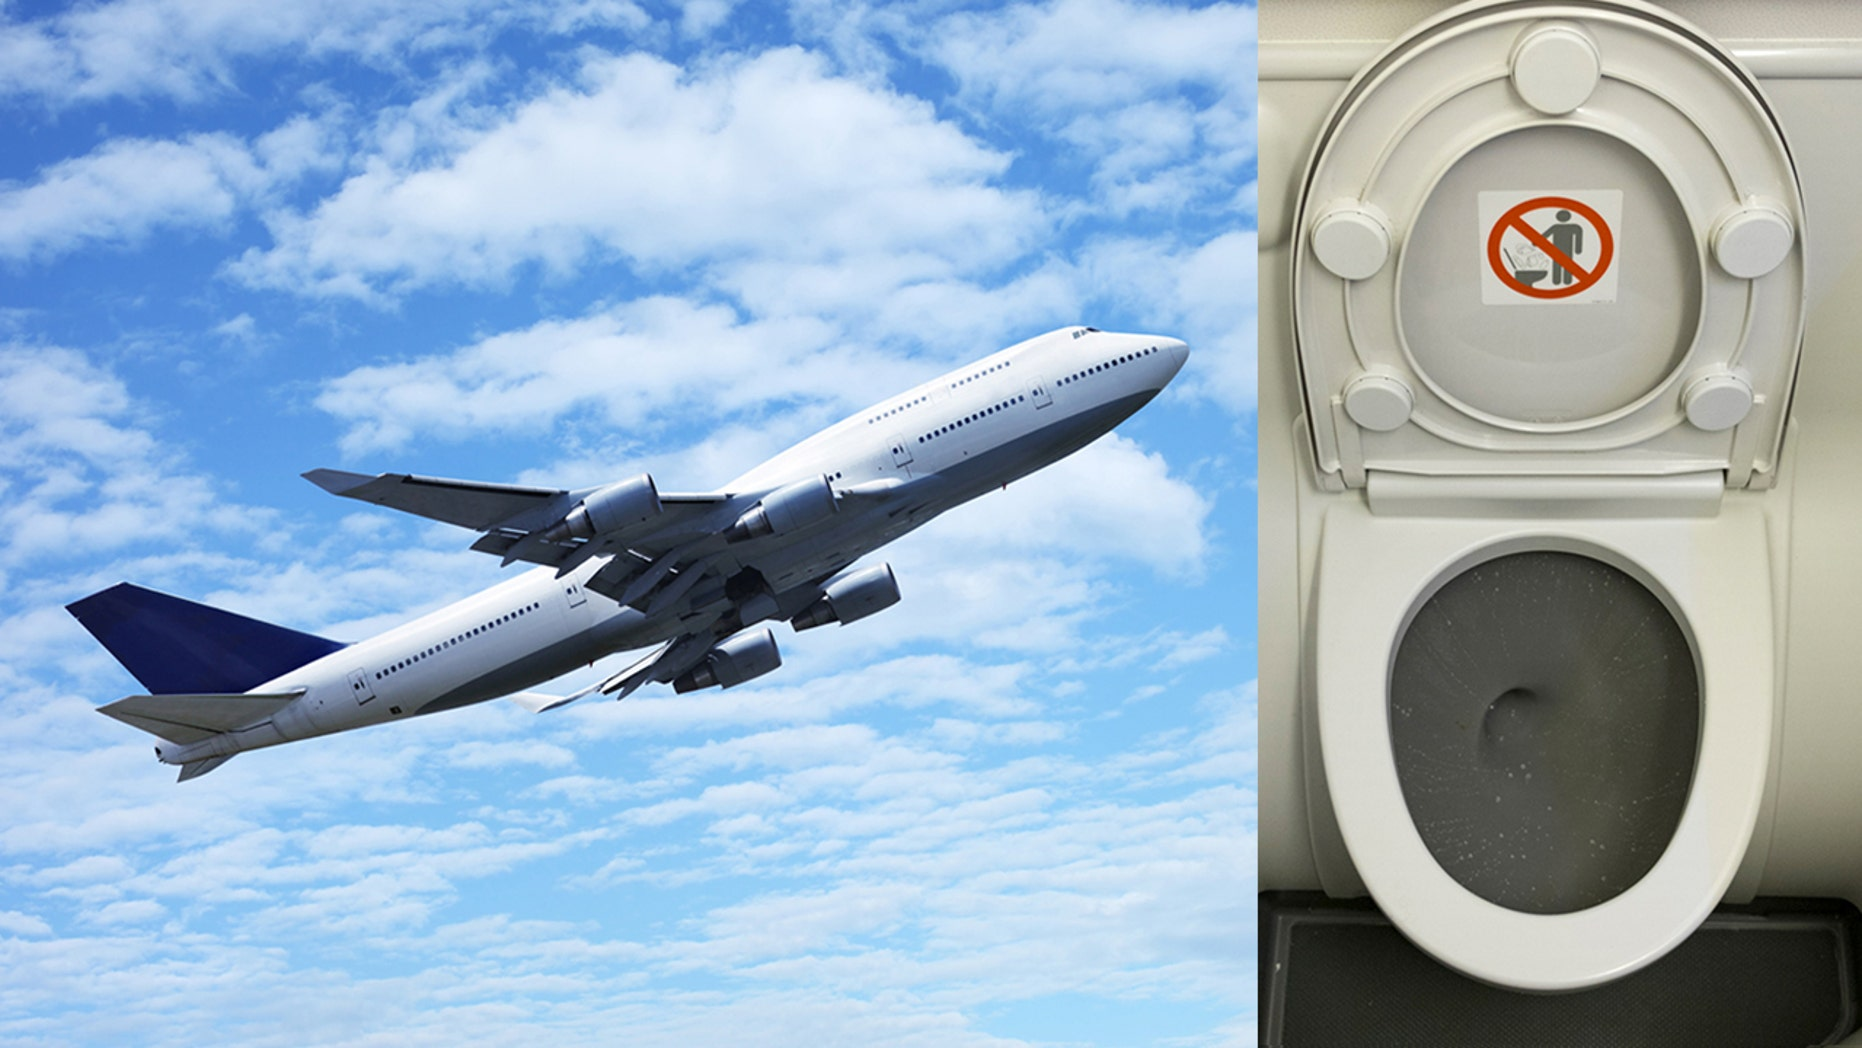 One airplane passenger has won overnight internet fame after sharing a self-produced video to Twitter of herself licking the toilet seat of a plane bathroom.